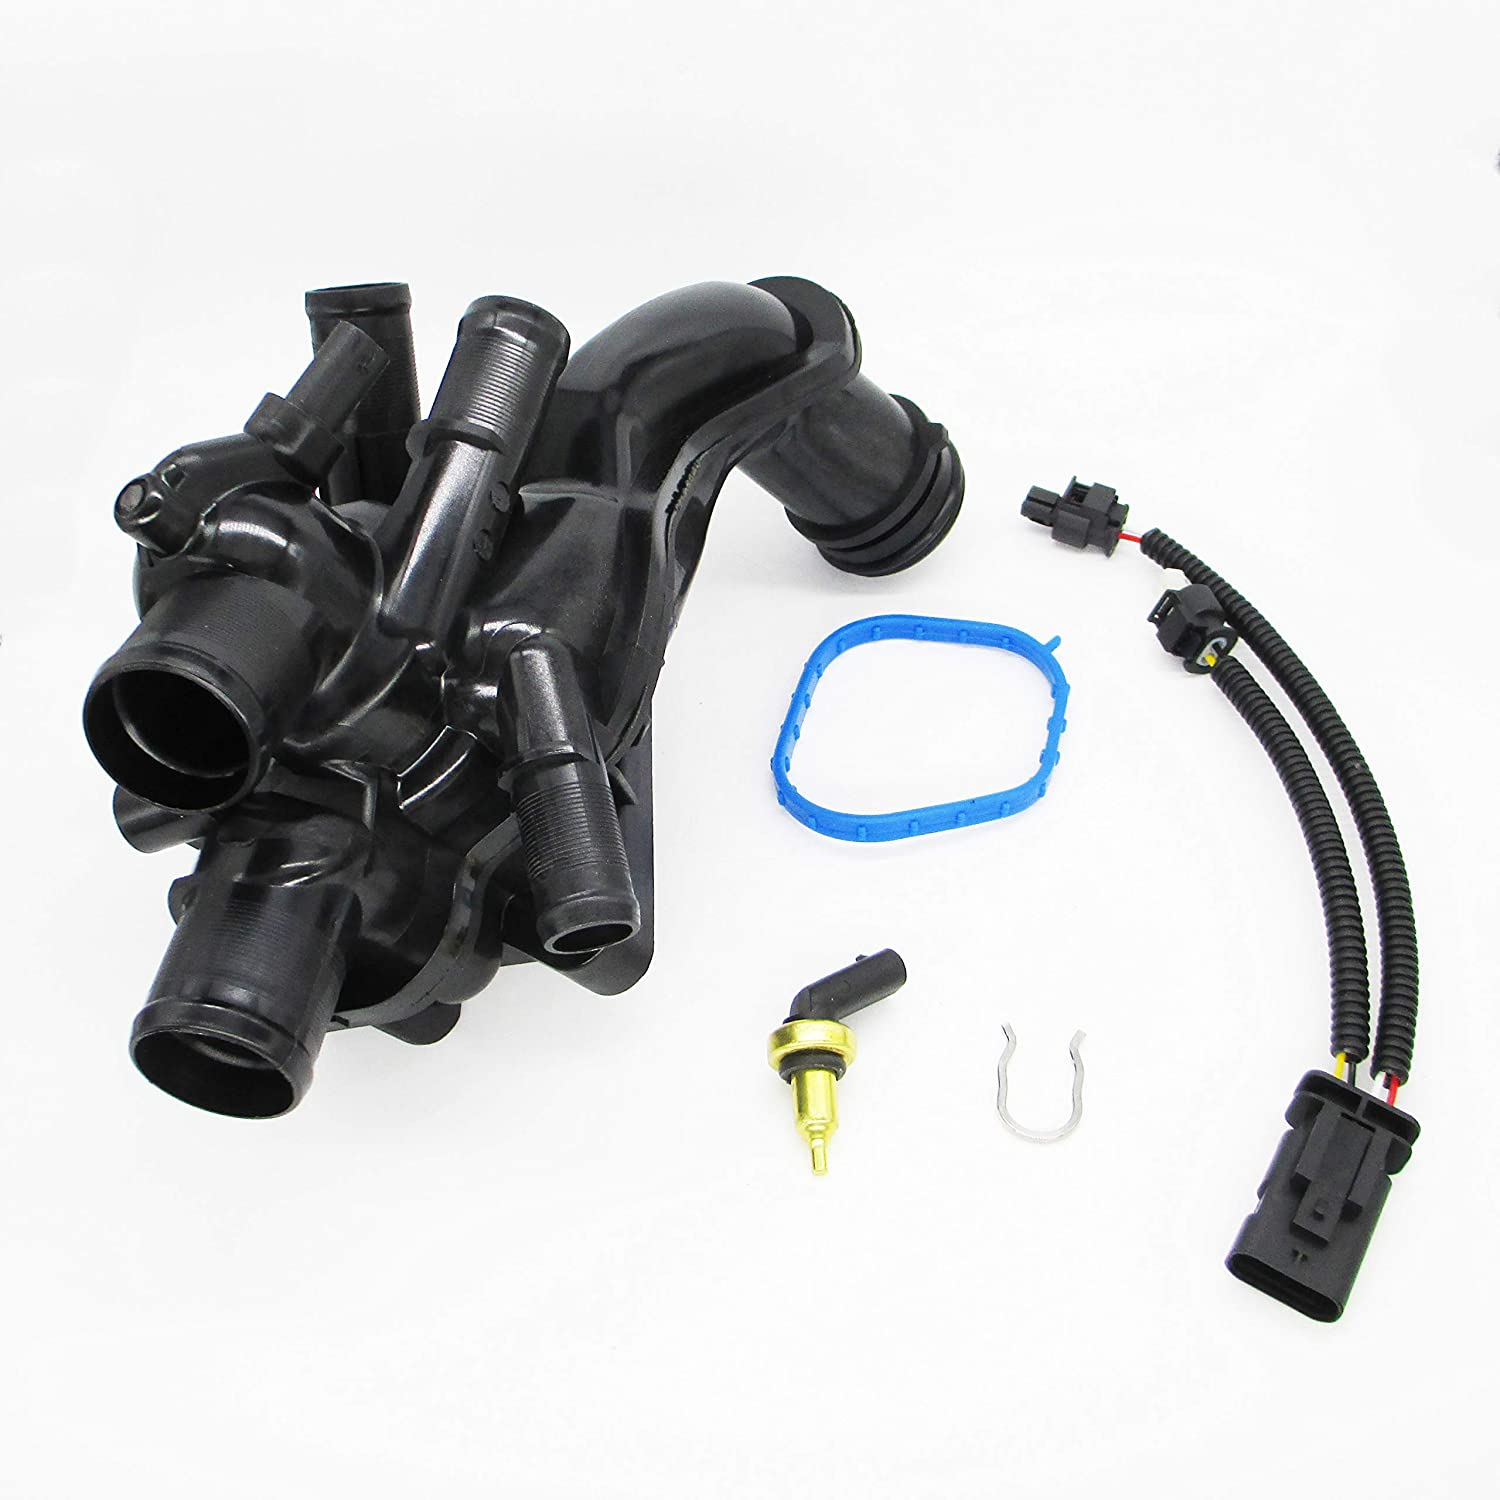 Sensor Adapter Lead for Mini Cooper R56 R57 R58 N18B16A Engine Coolant Thermostat Housing